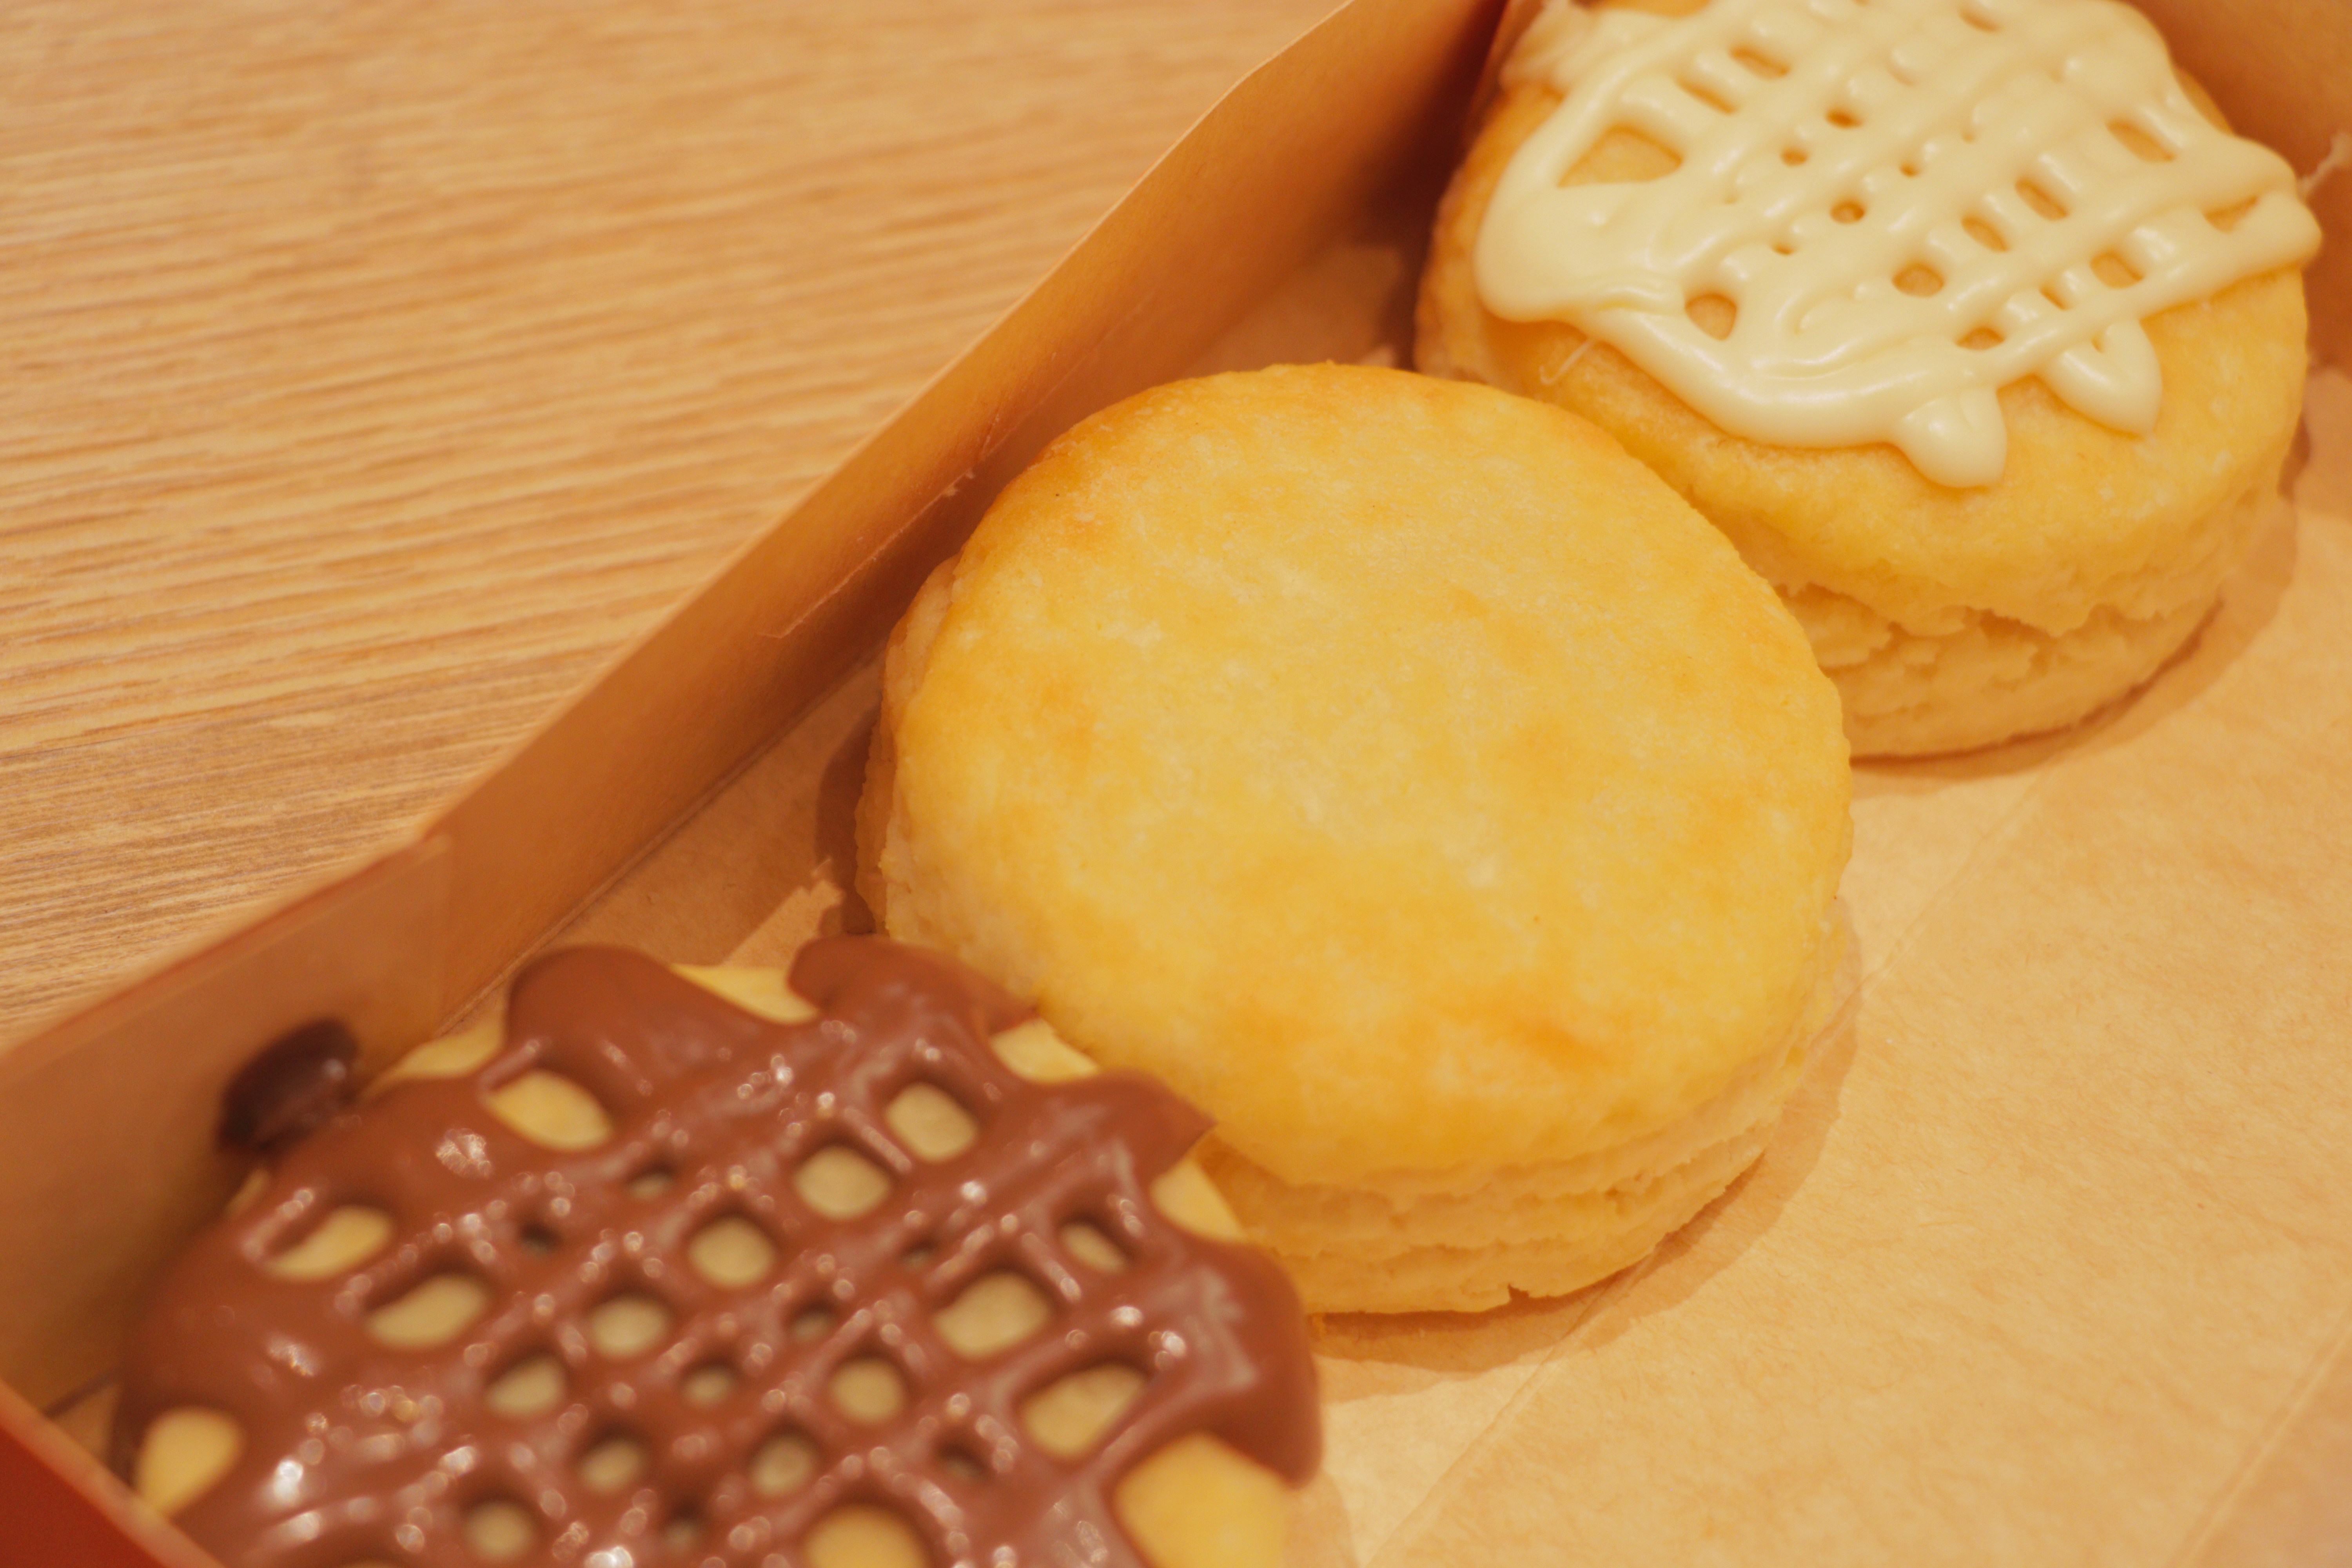 _3 Biscuits